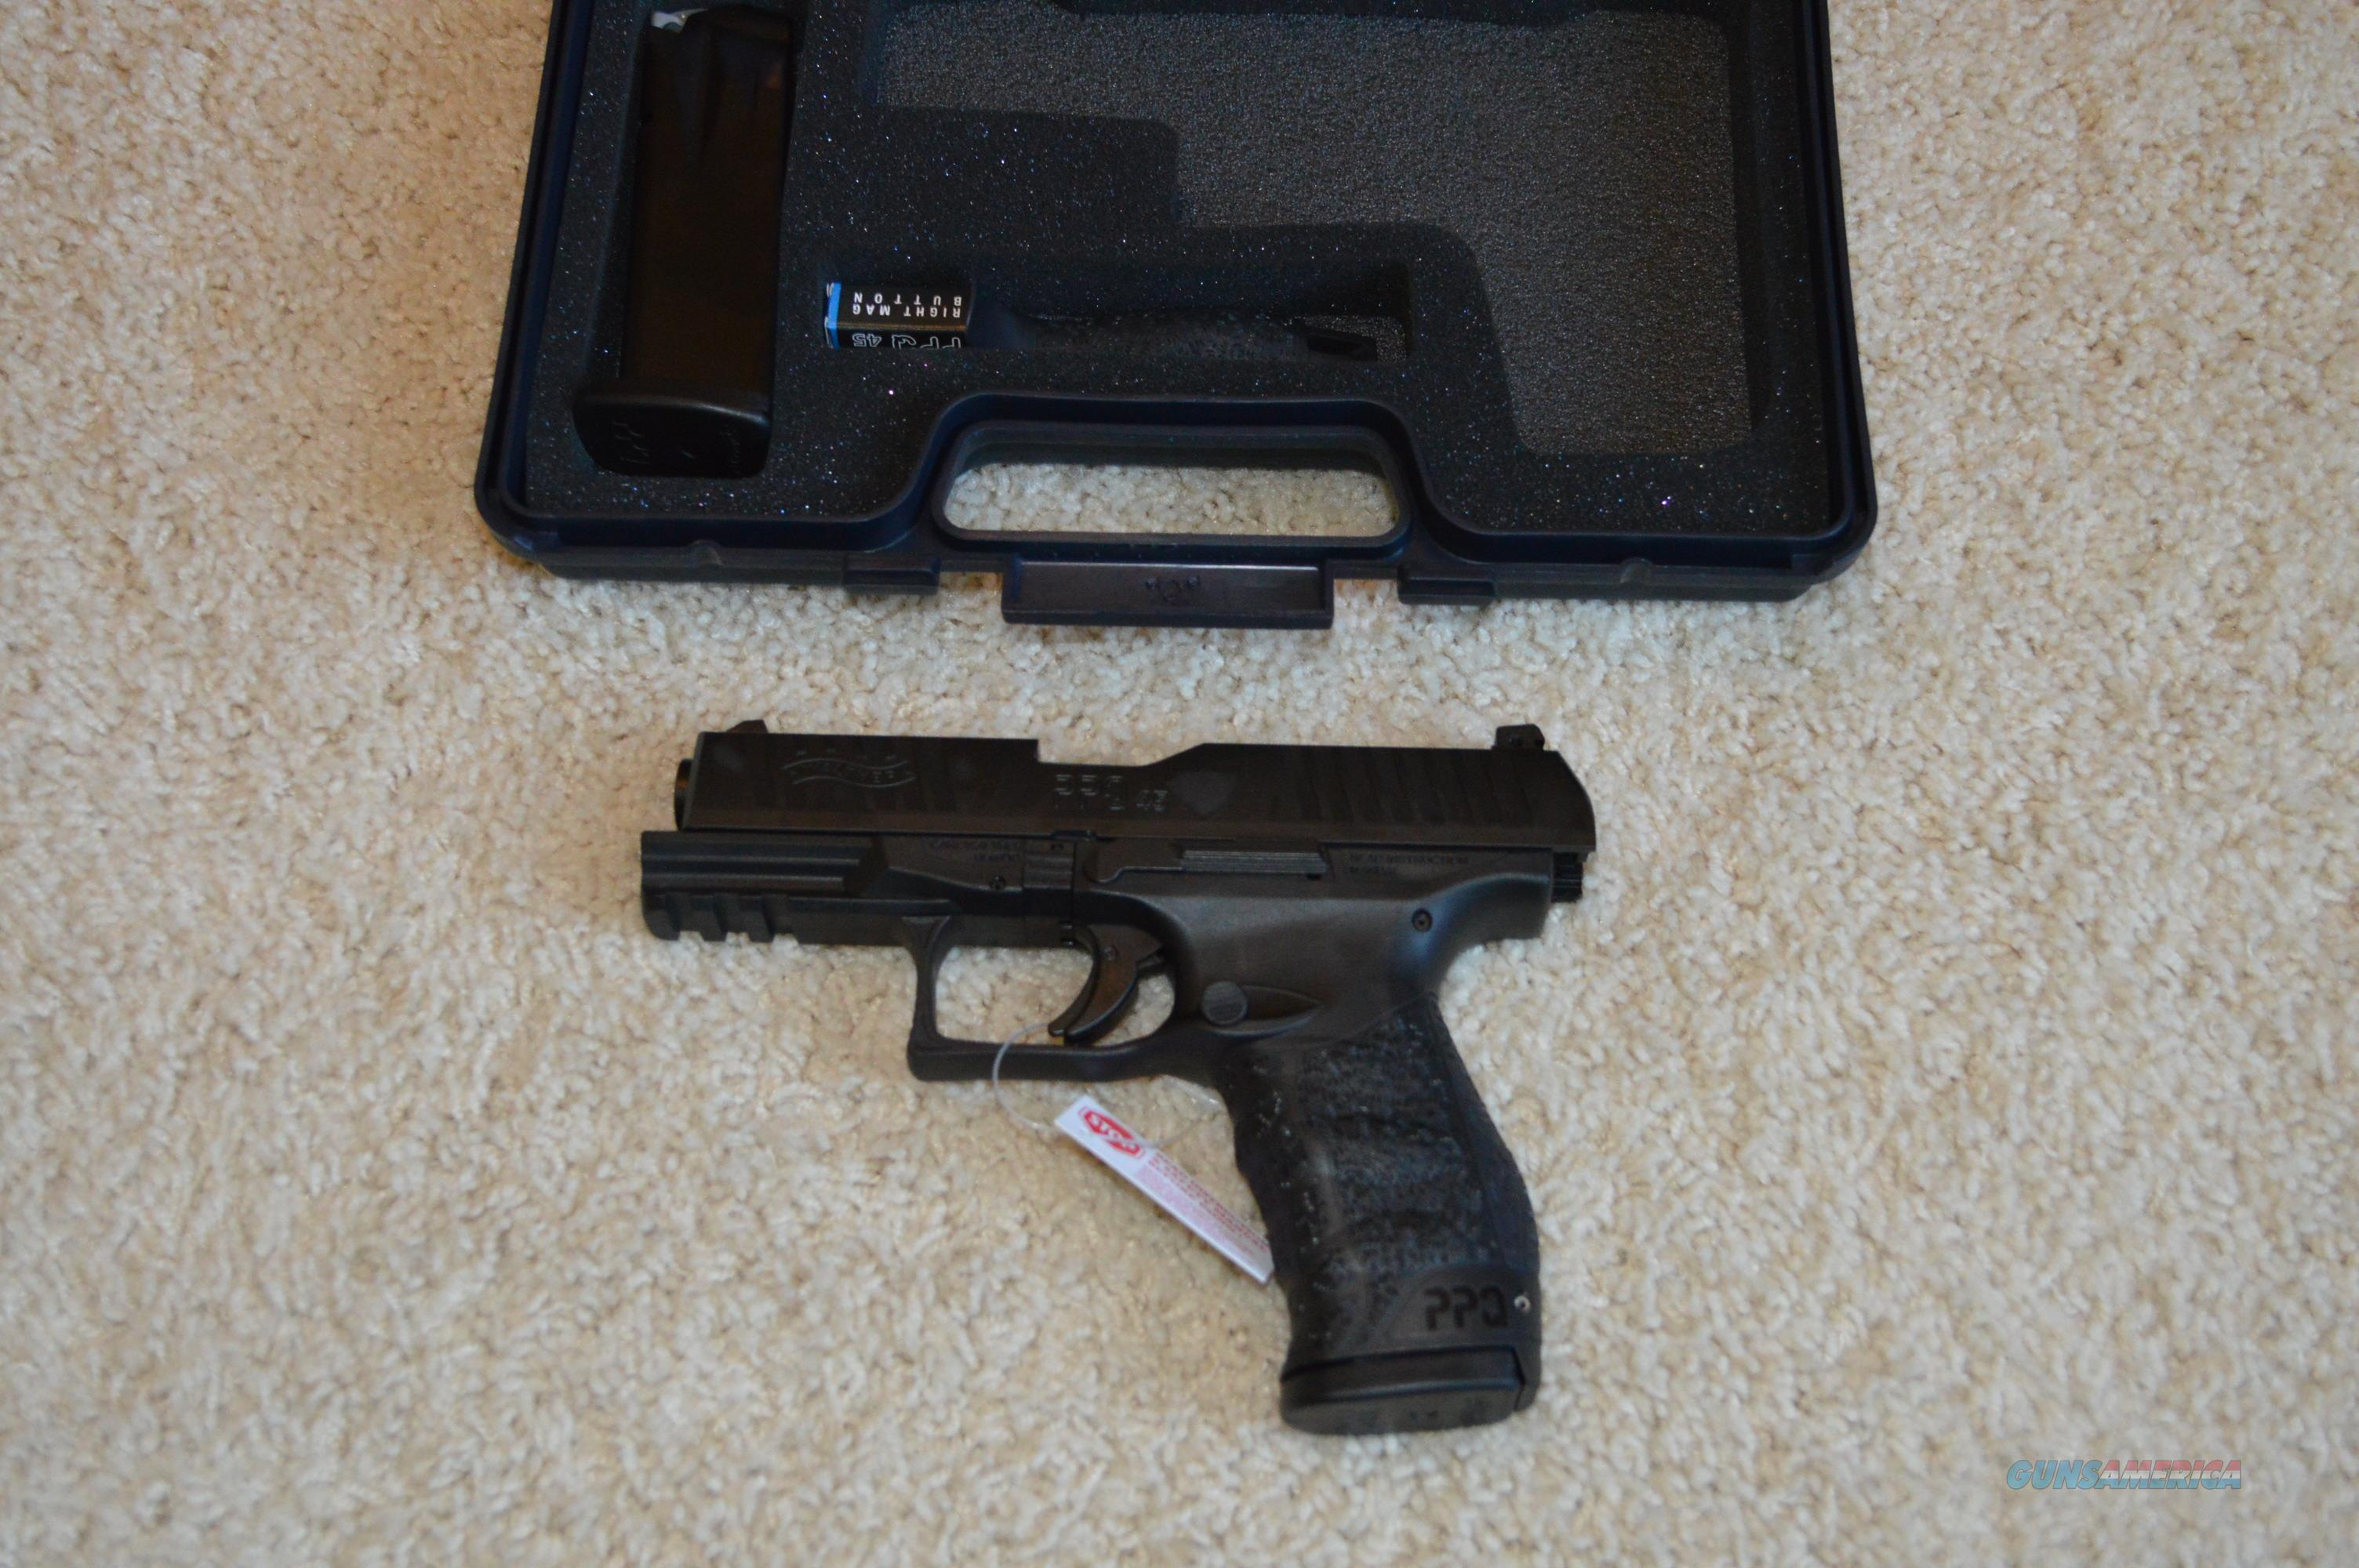 ON SALE! Walther PPQ M2 45acp  Guns > Pistols > Walther Pistols > Post WWII > P99/PPQ